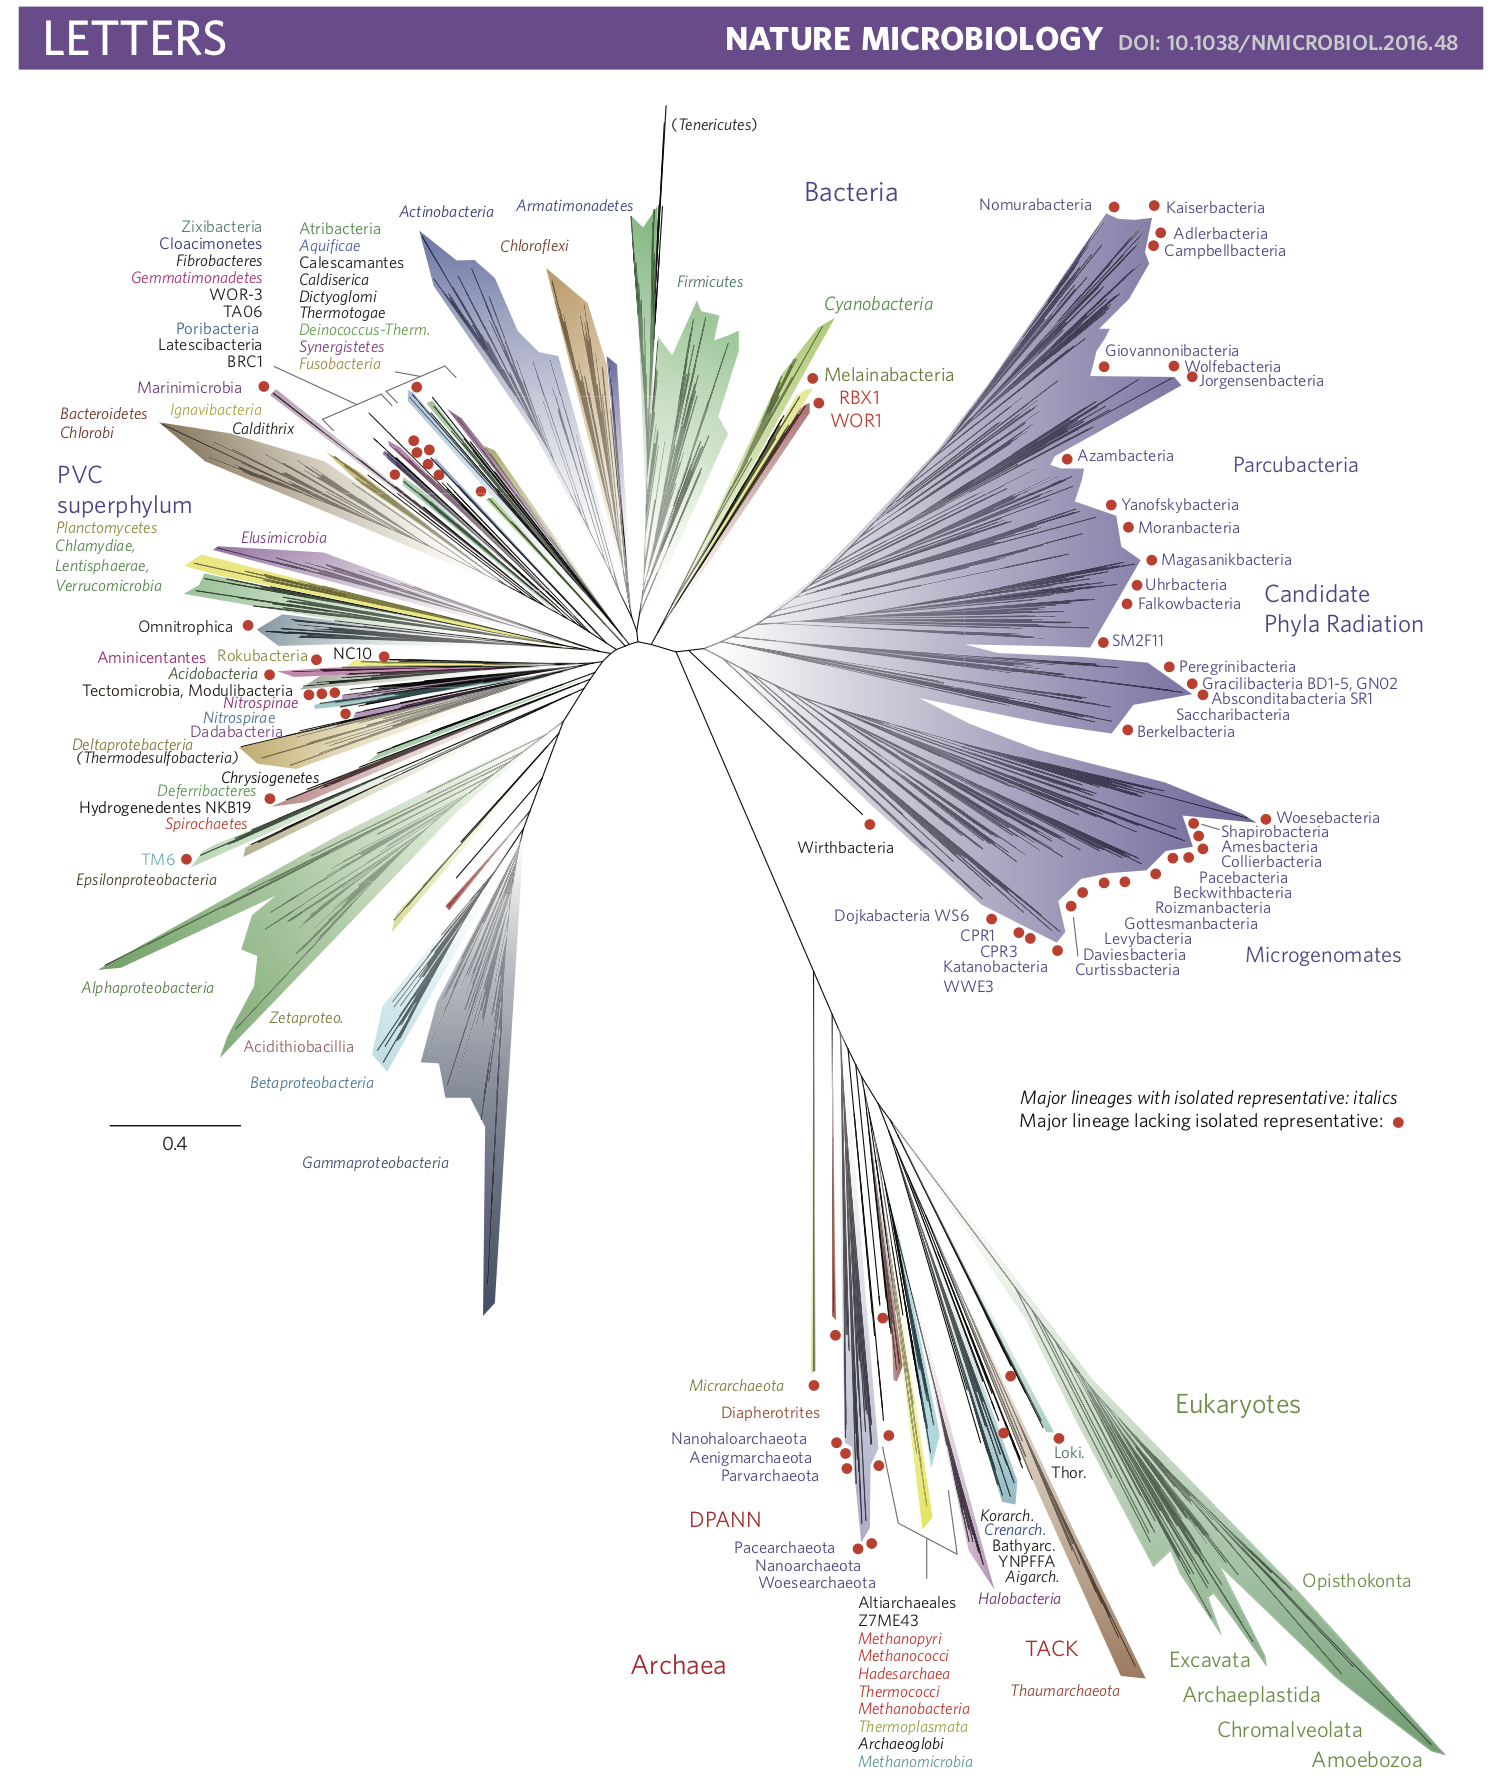 Major New Microbial Groups Expand Diversity And Alter Our